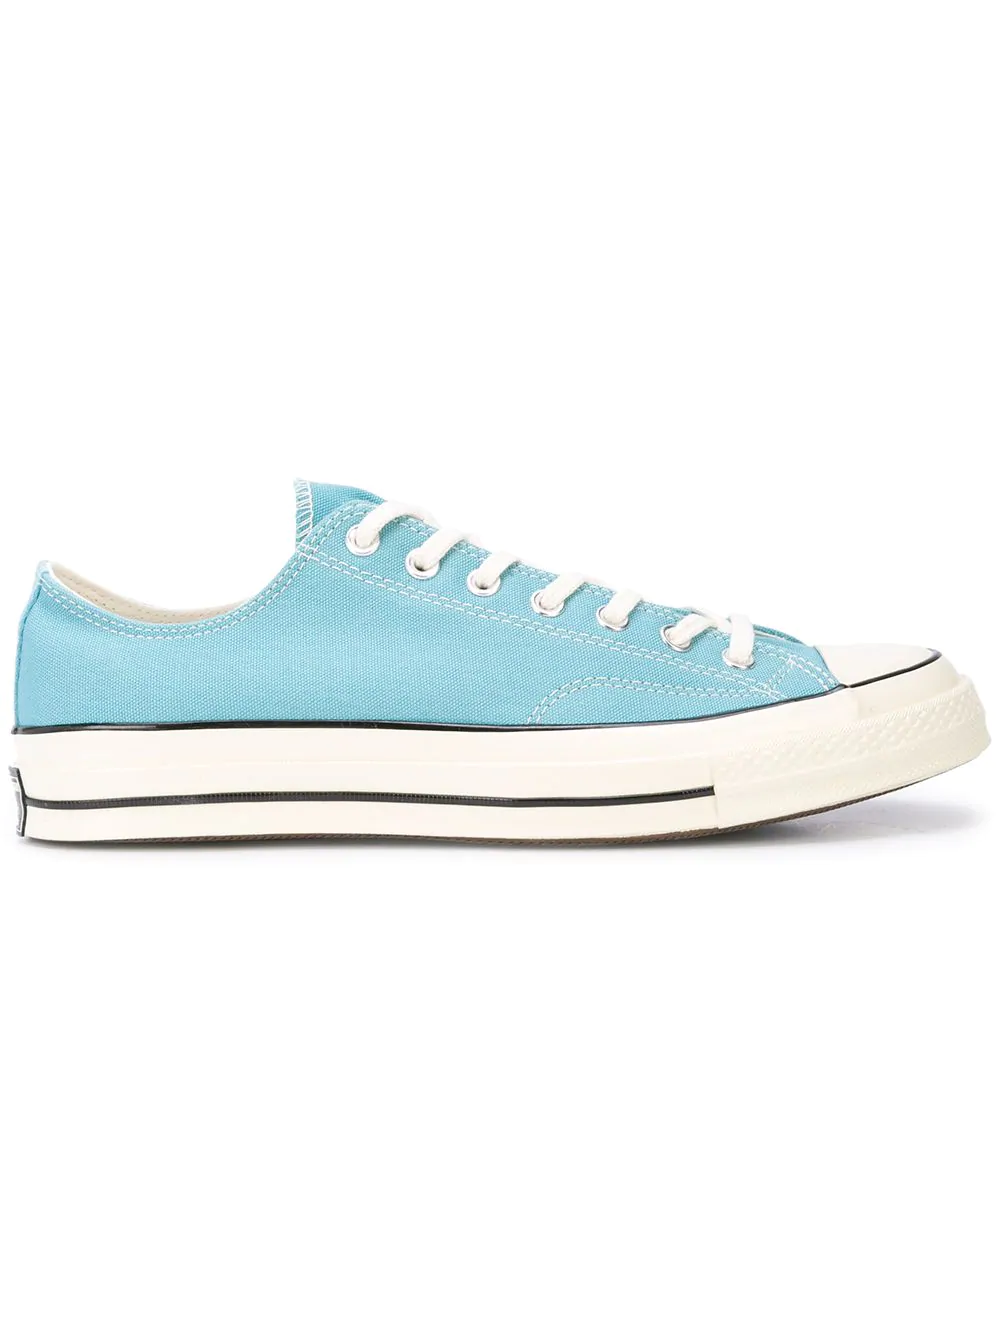 9646658bb34 Converse Chuck Taylor All Star  70 Sneakers - Blue